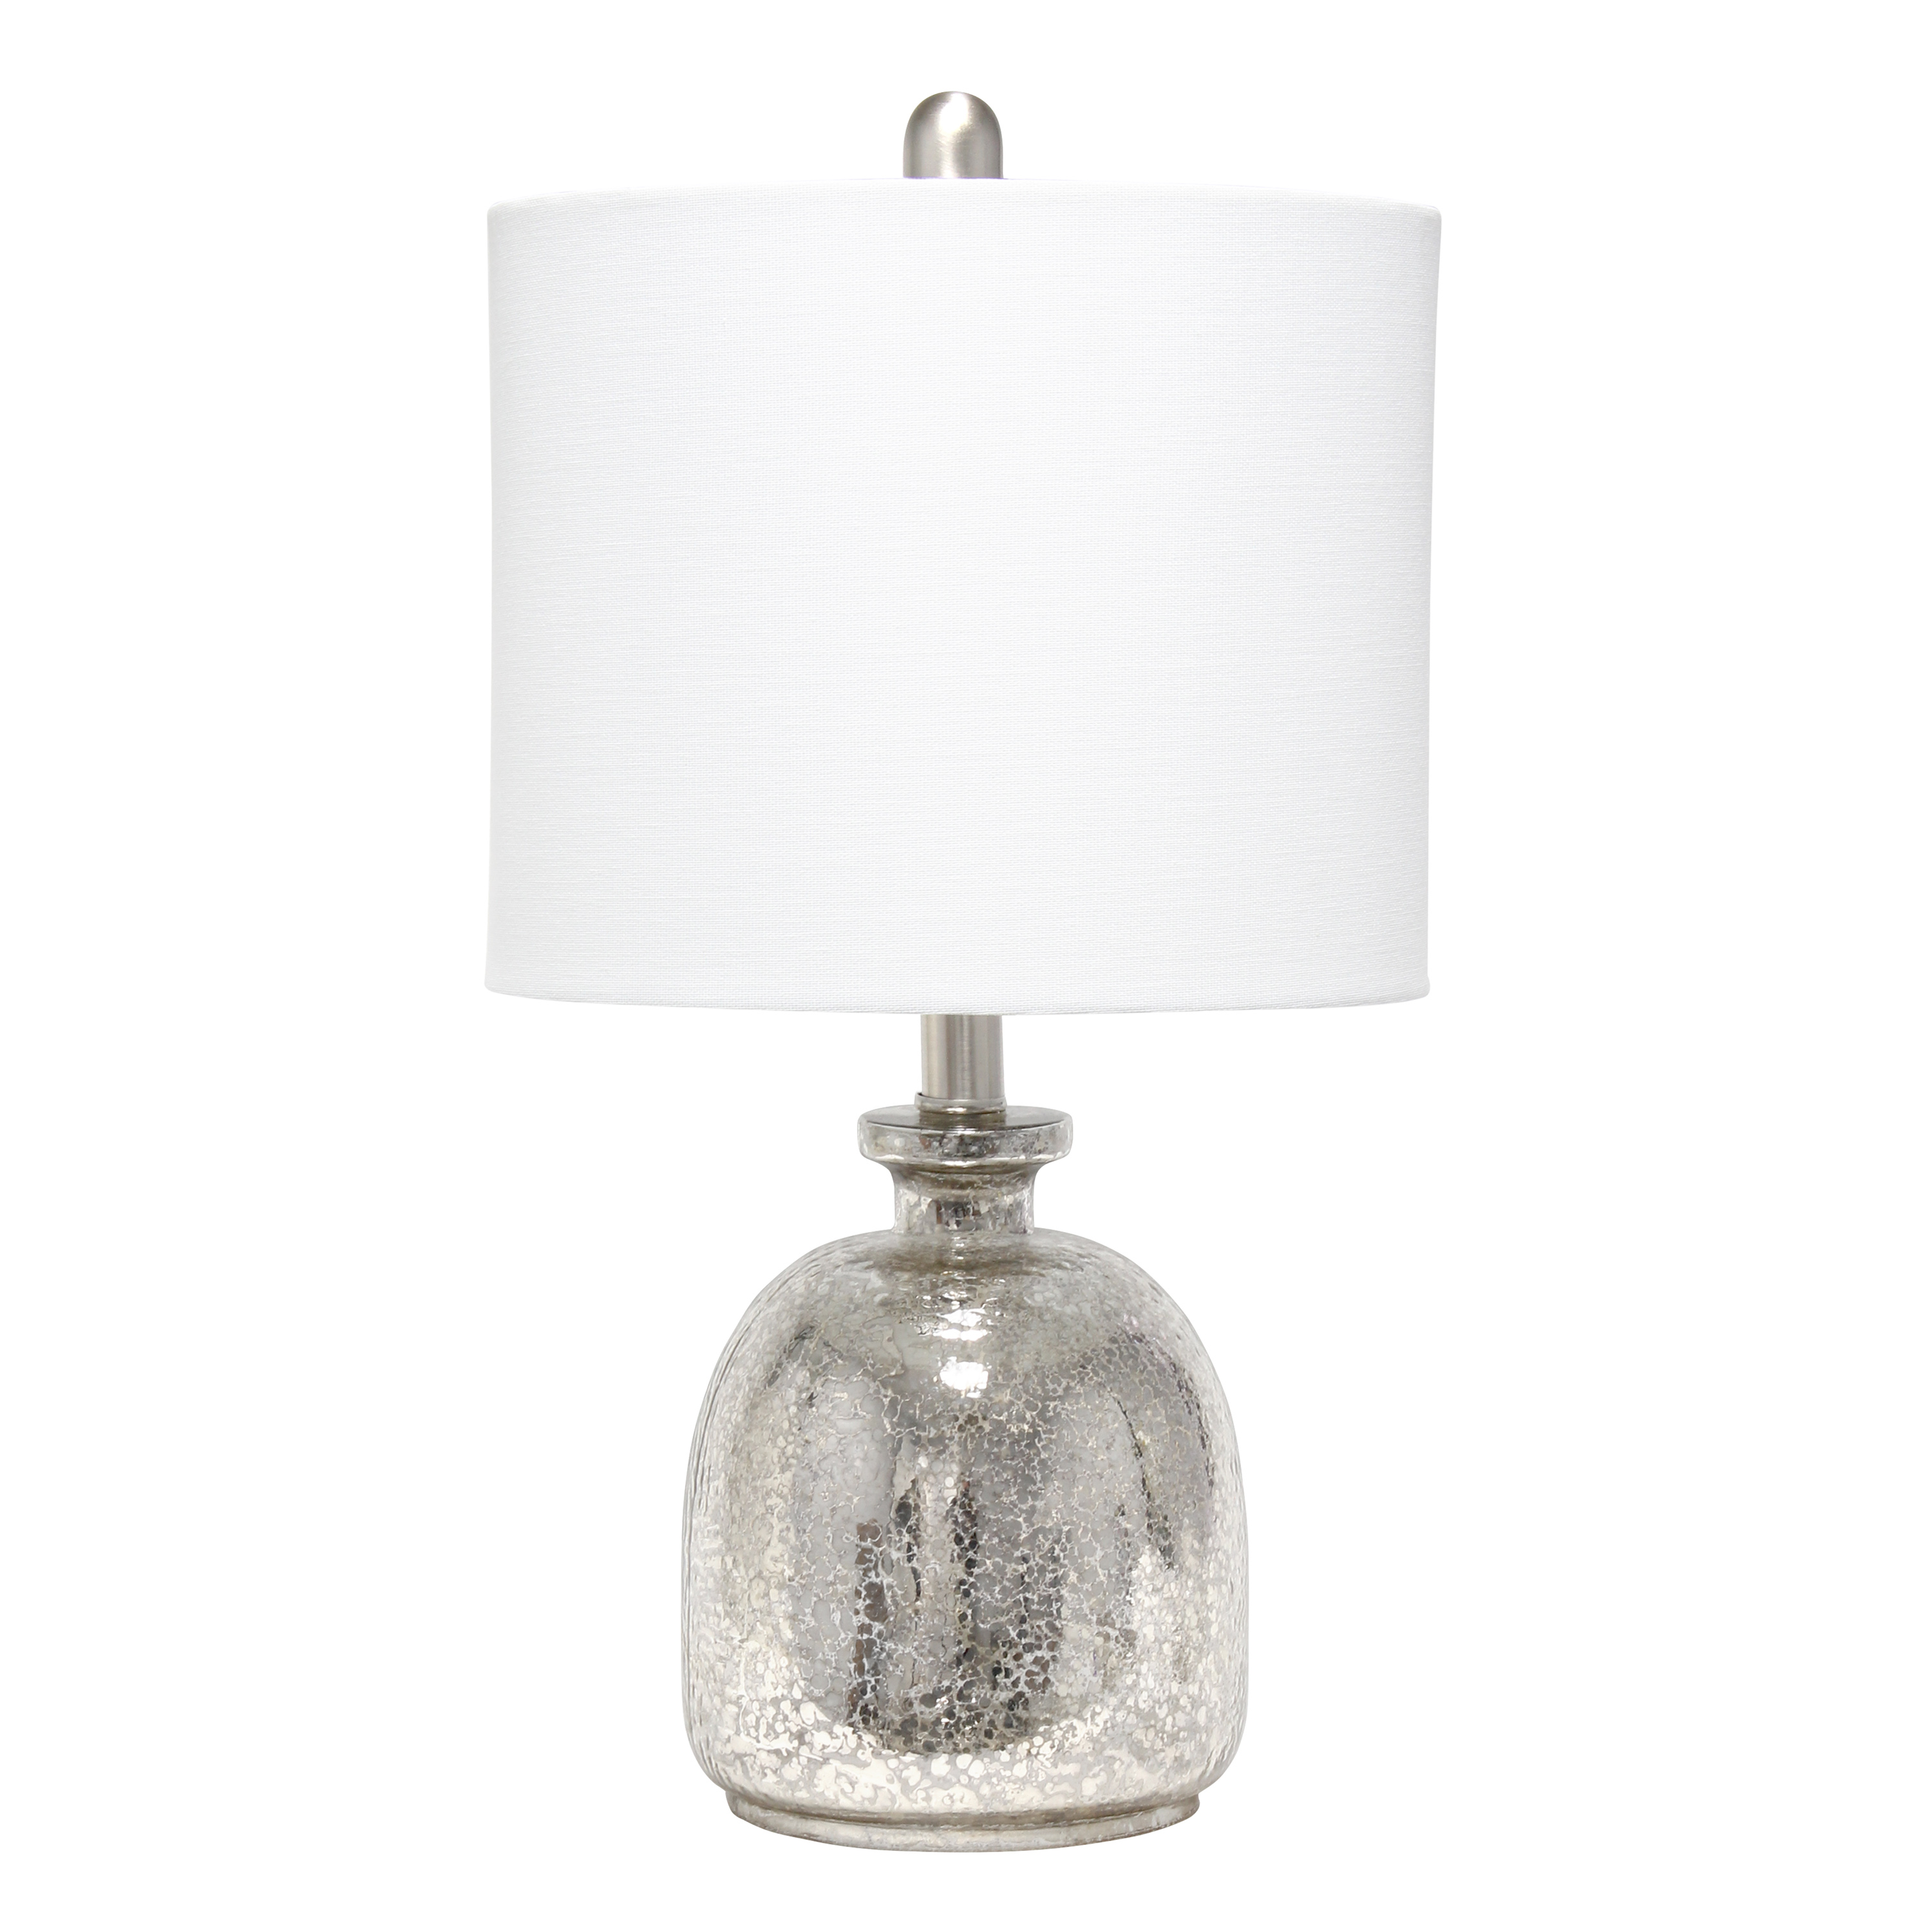 Lalia Home Mercury Hammered Glass Jar Table Lamp with White Linen Shade